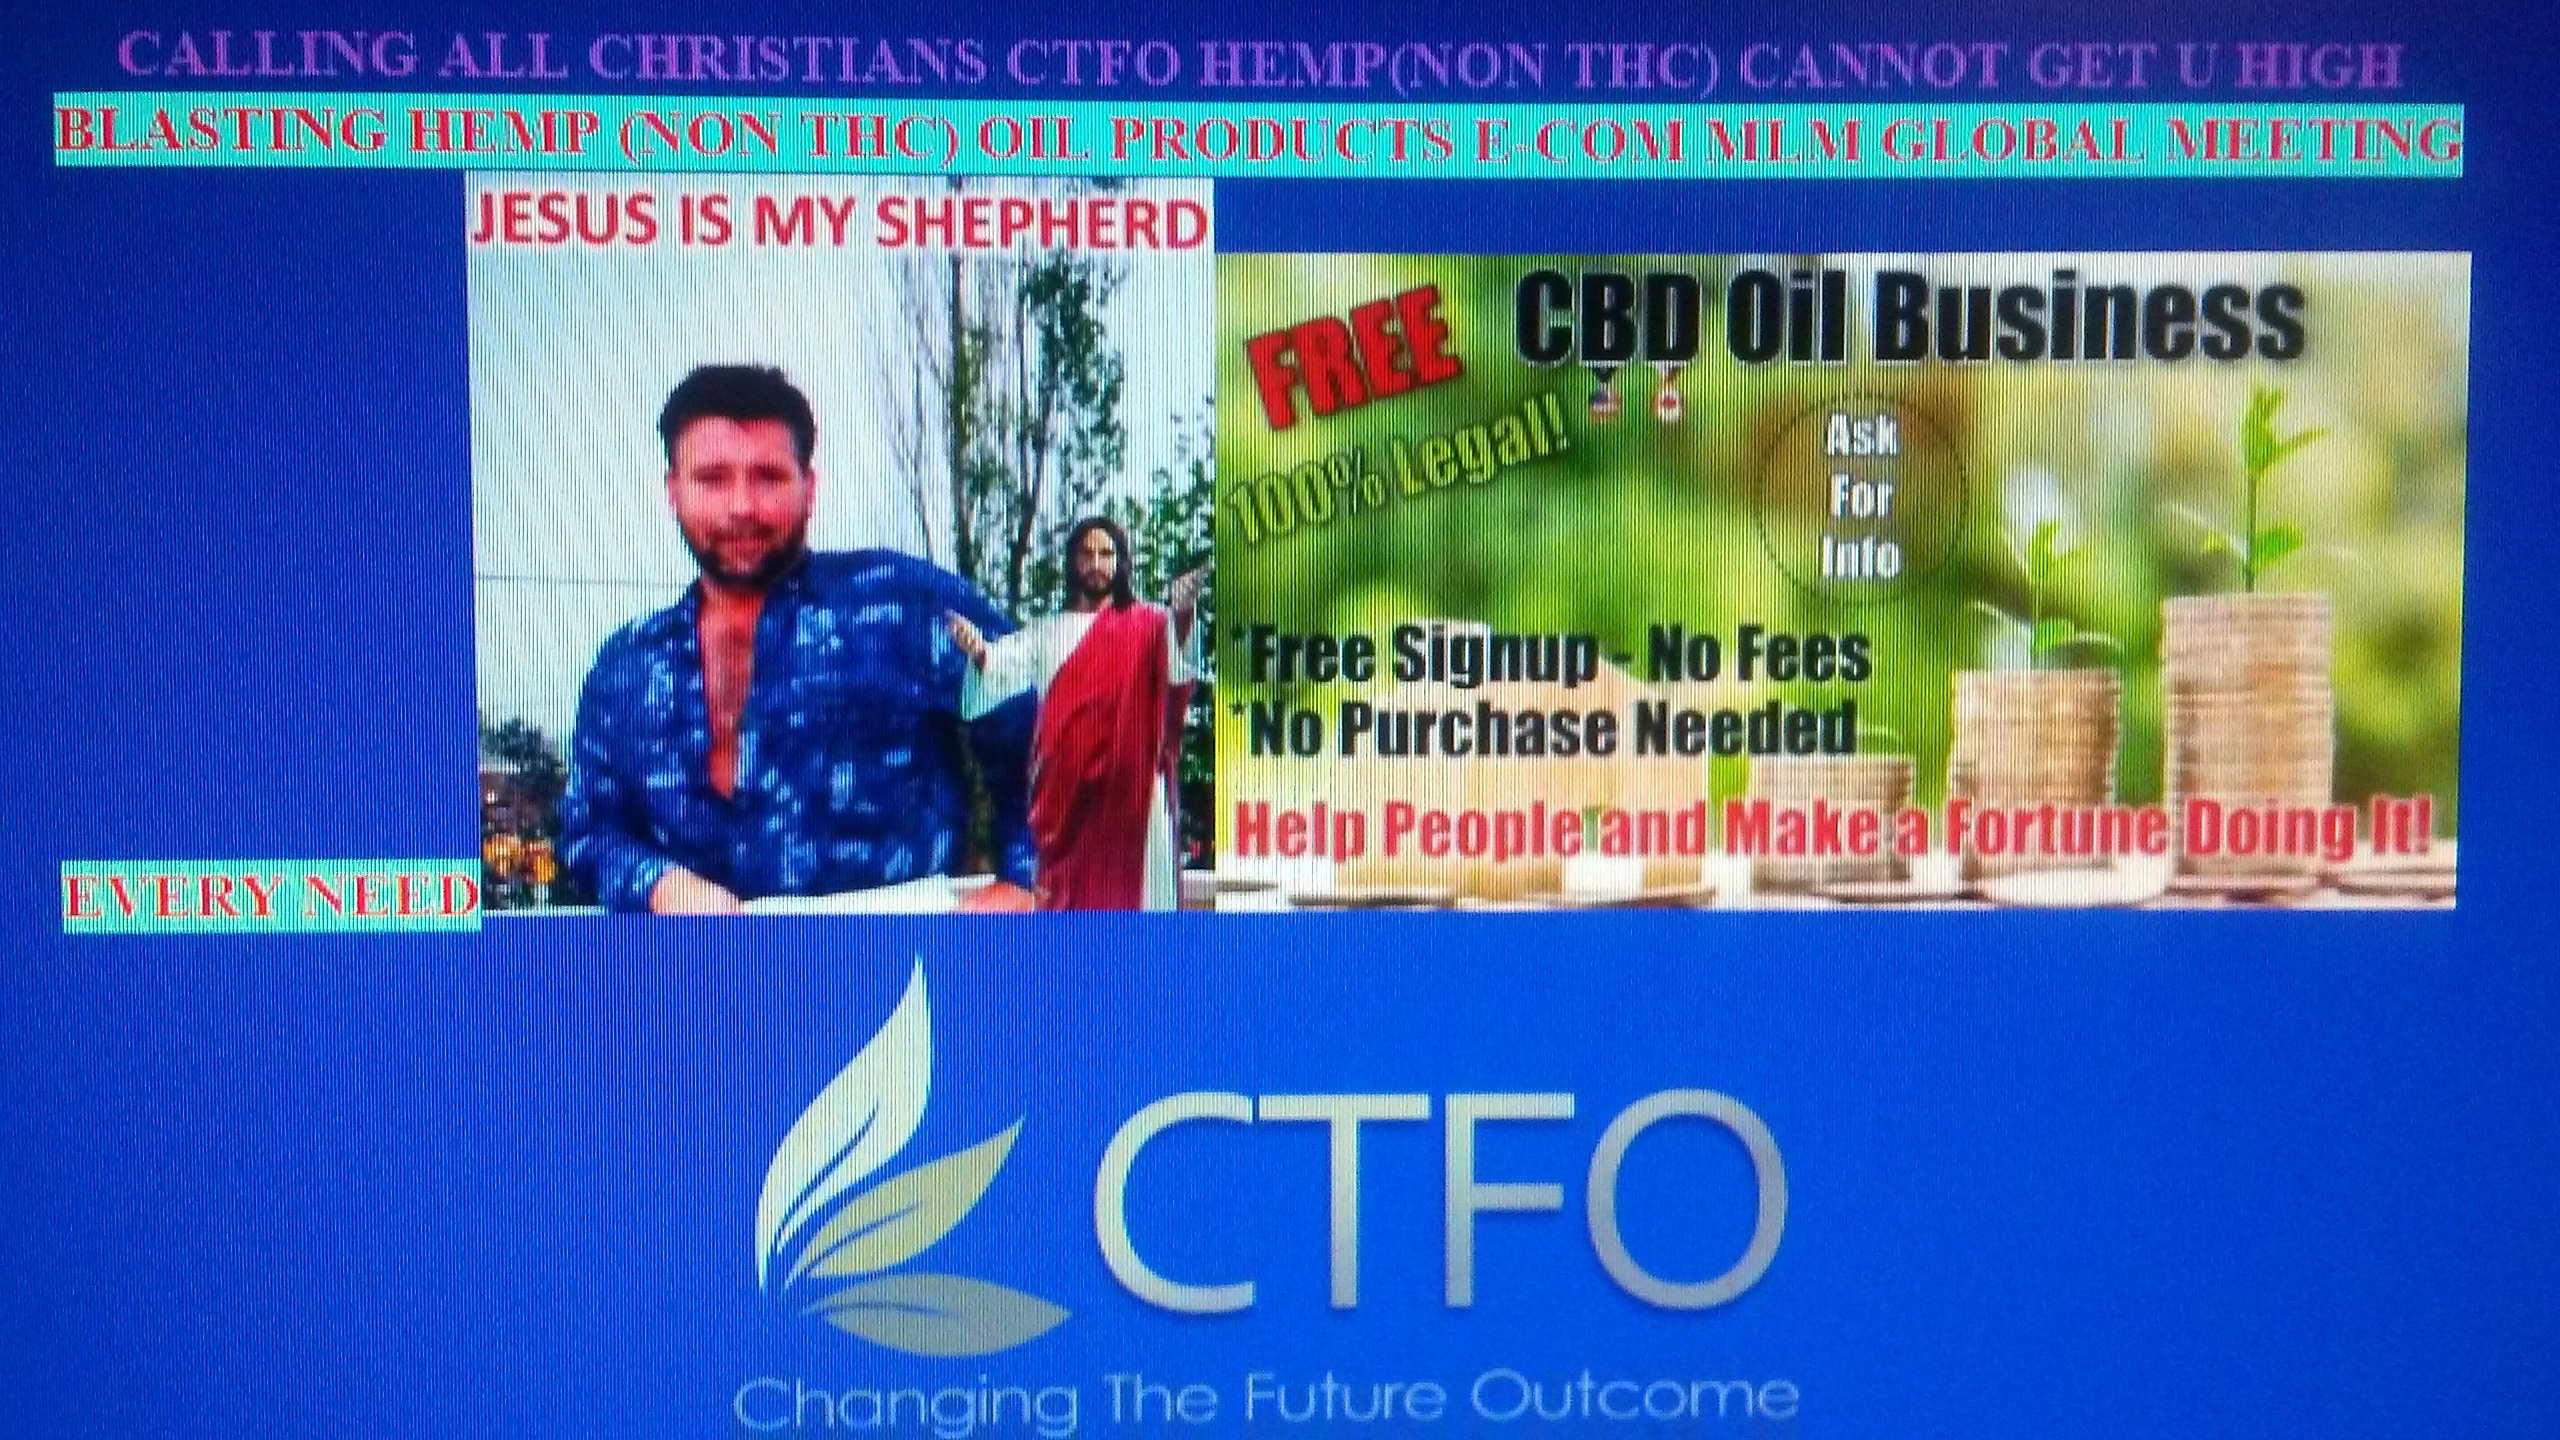 CALLING ALL CHRISTIANS CTFO HEMP (NON THC) CANNOT GET U HIGH